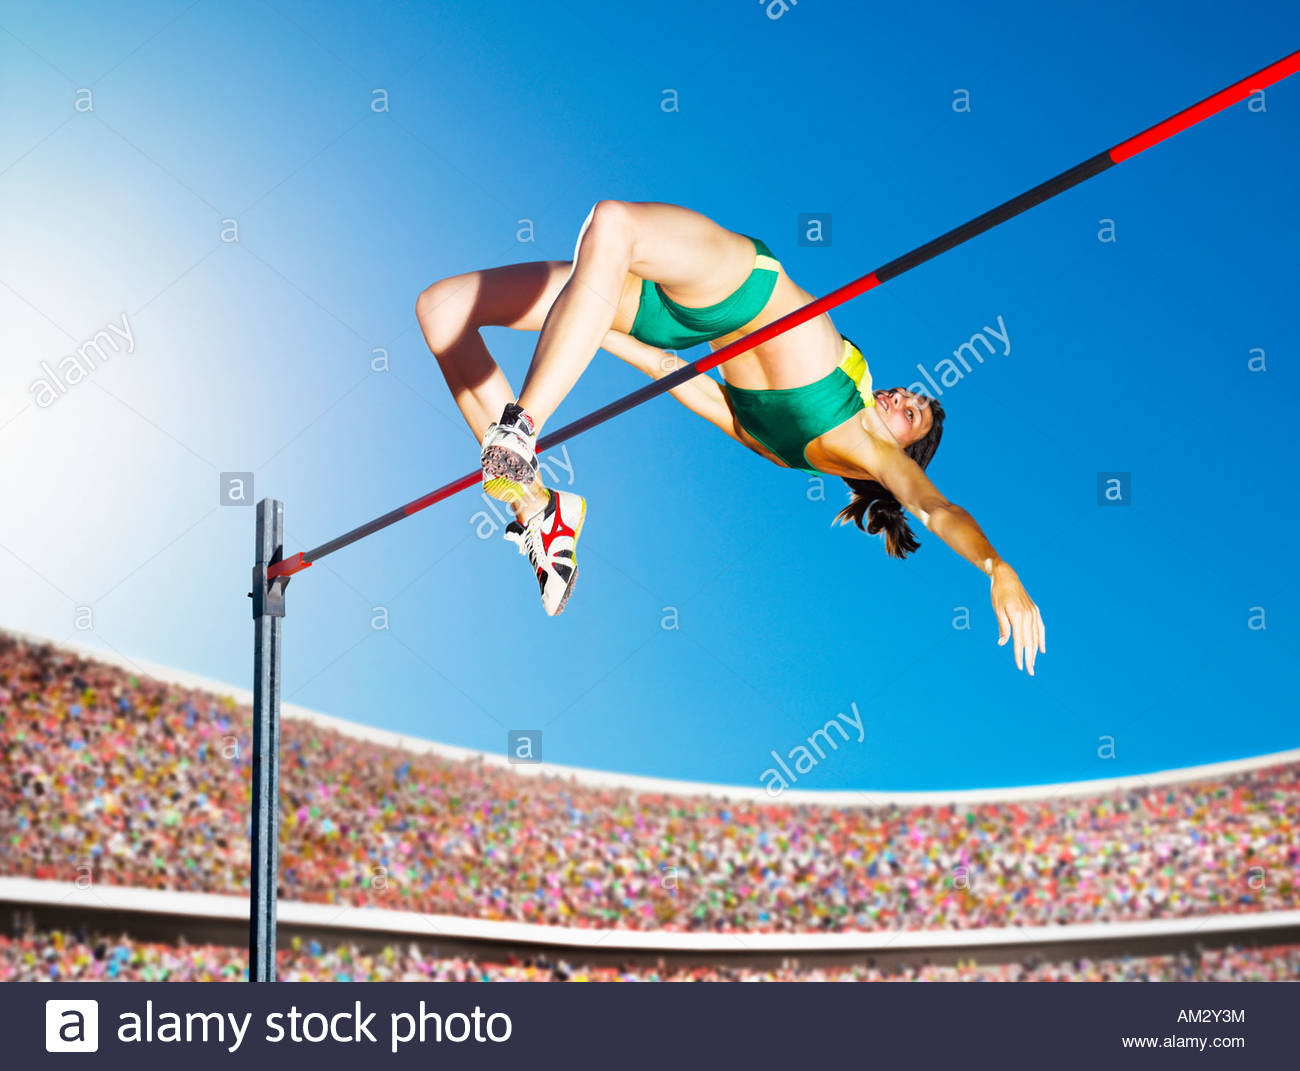 Athlete high jumping in an arena - Stock Image